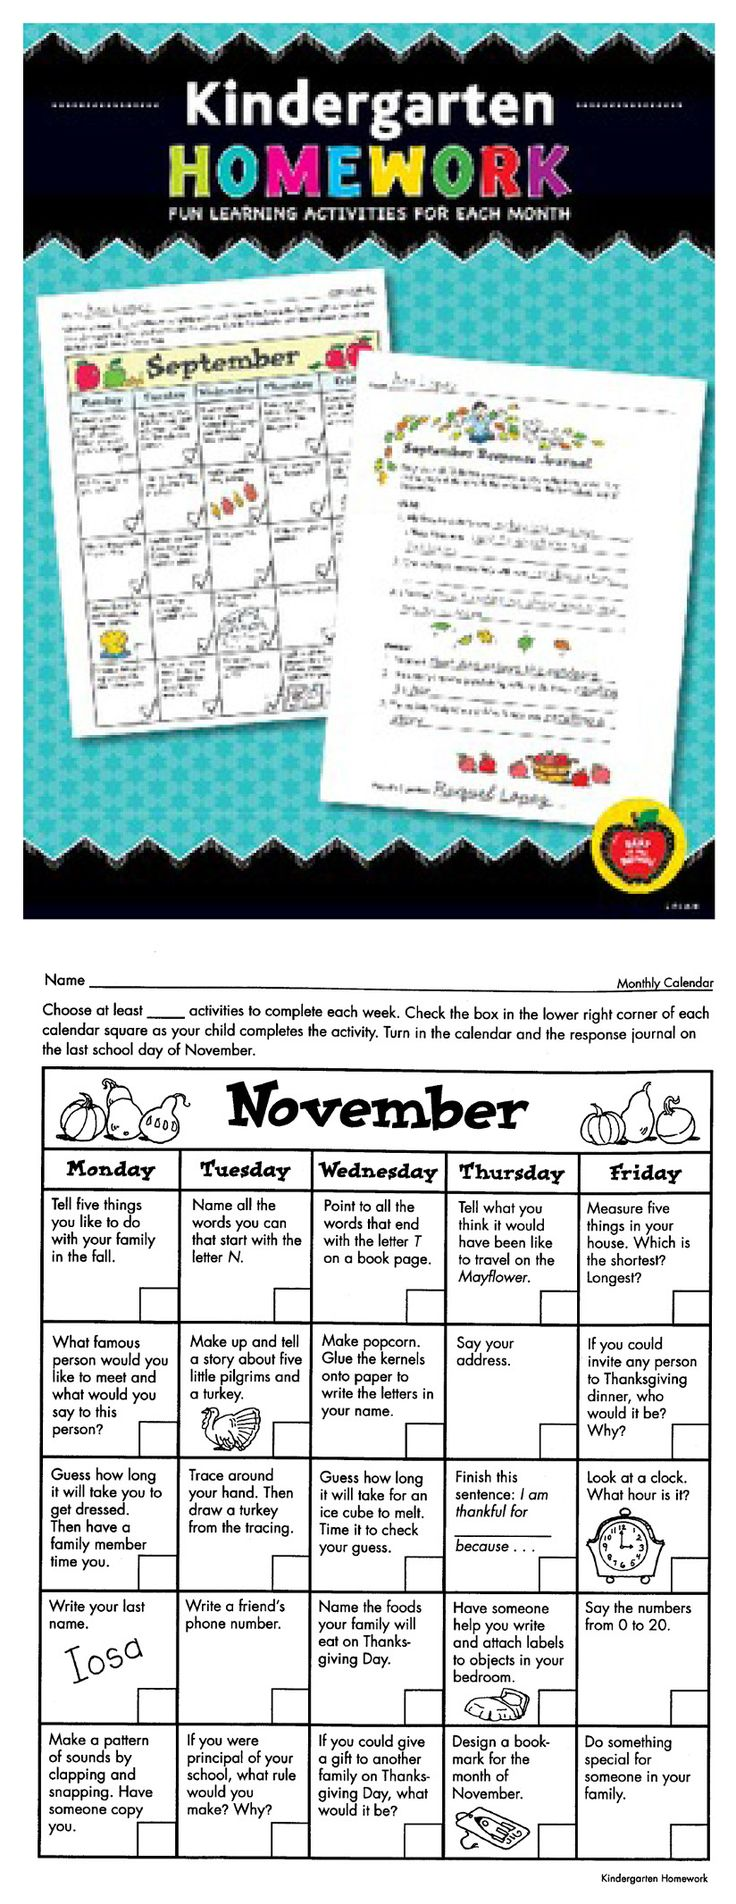 Calendar Games For Kindergarten : Kindergarten homework fun learning activities for each